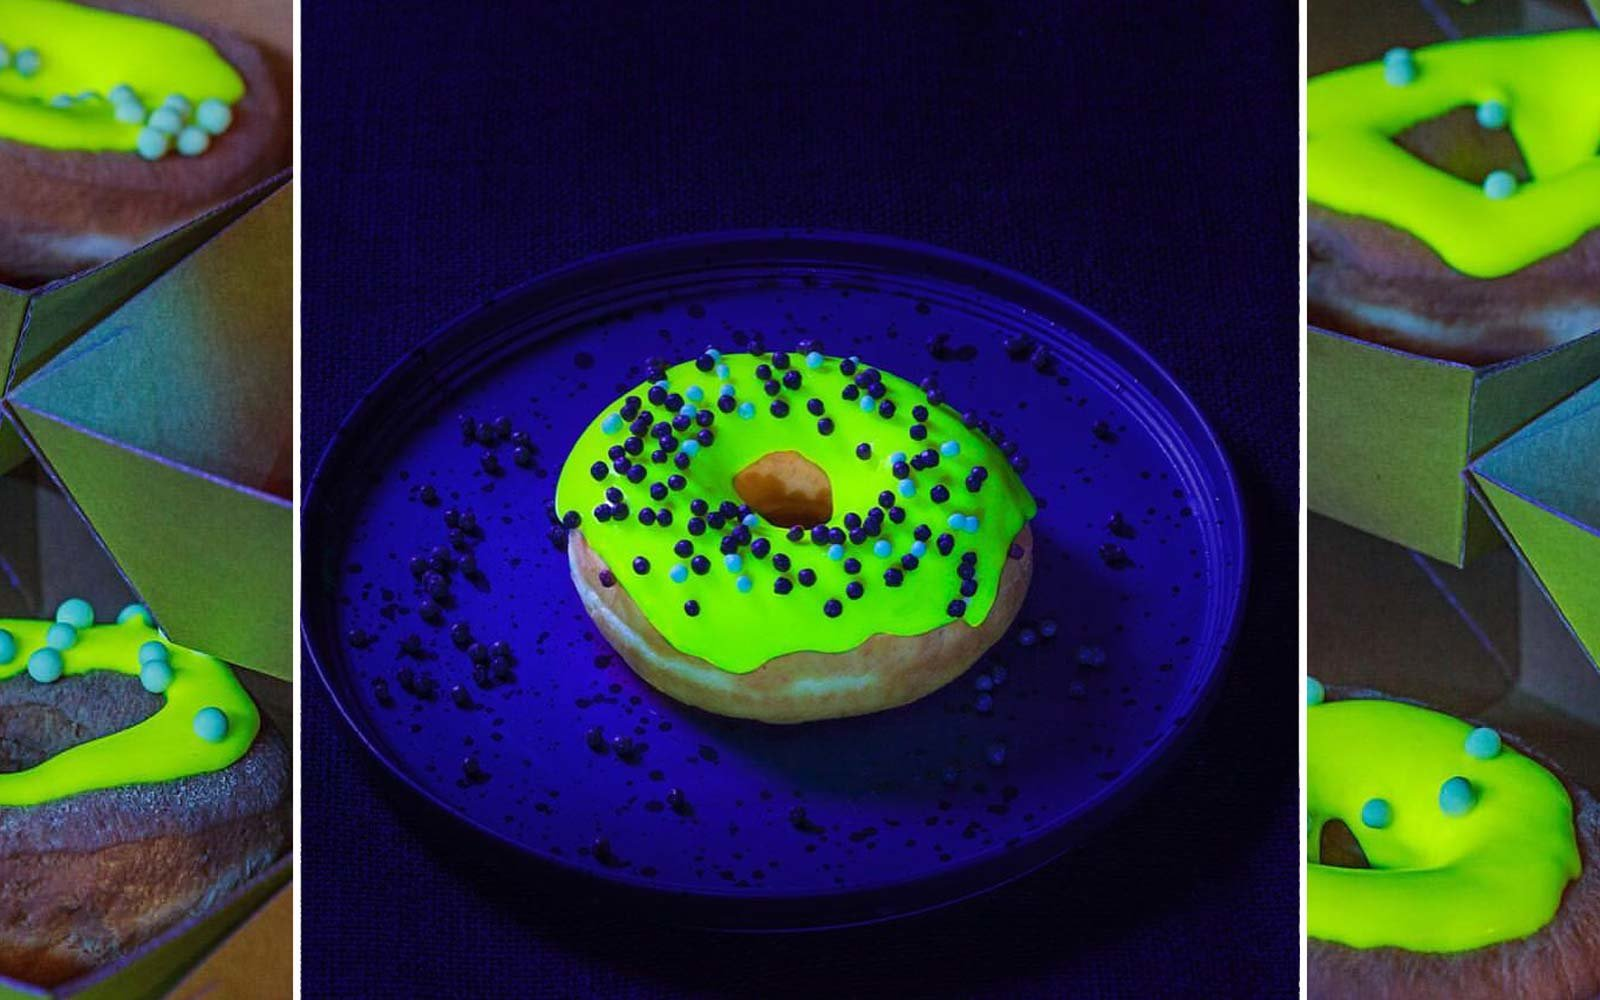 Glow in the dark donuts